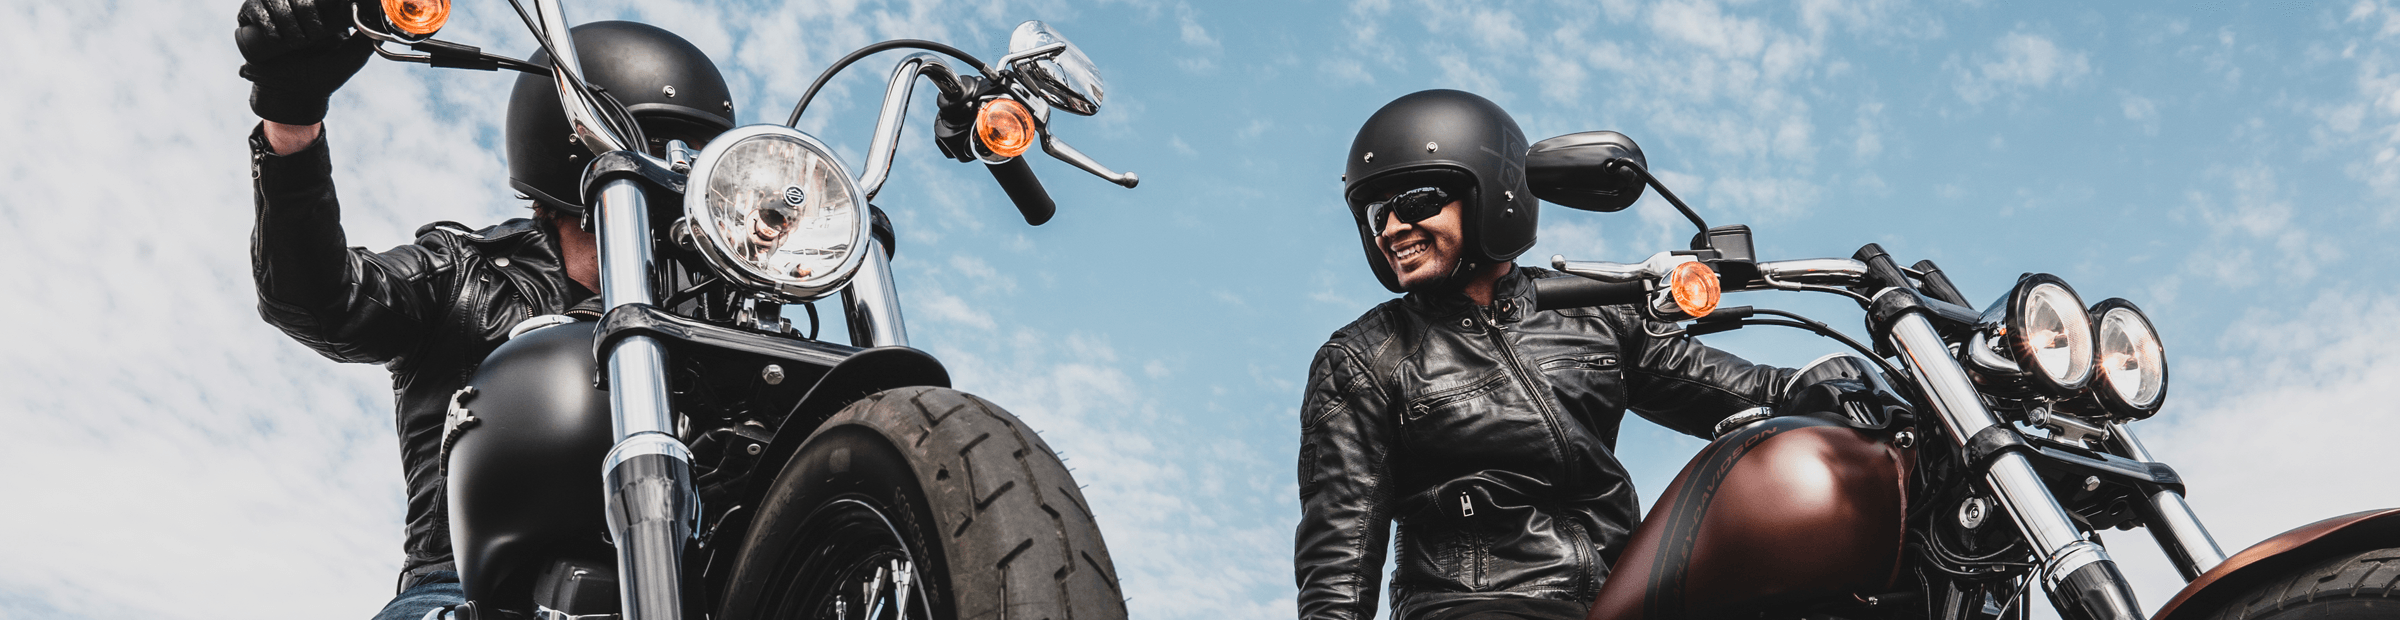 Dealer Specials at Iron Eagle Harley-Davidson®